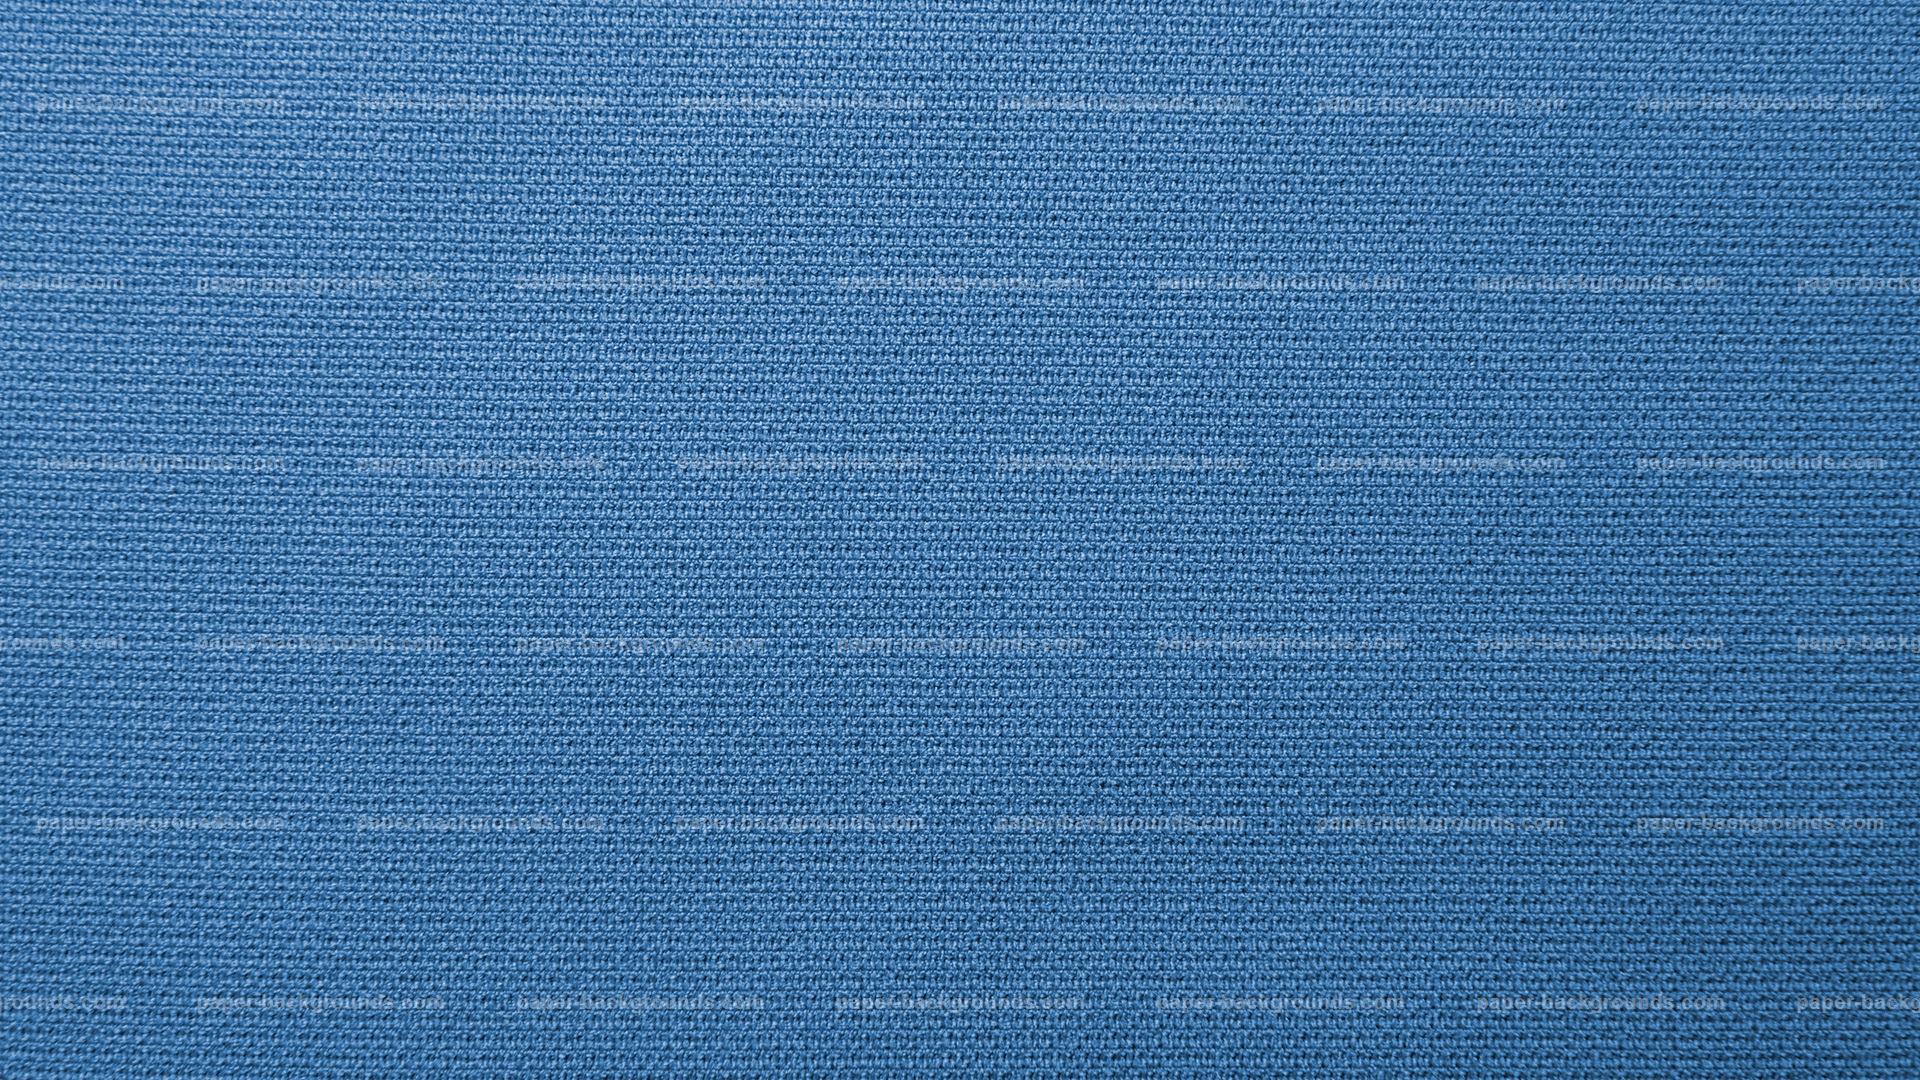 Blue Modern Wallpaper Texture Fabric Hd Driverlayer Search Engine